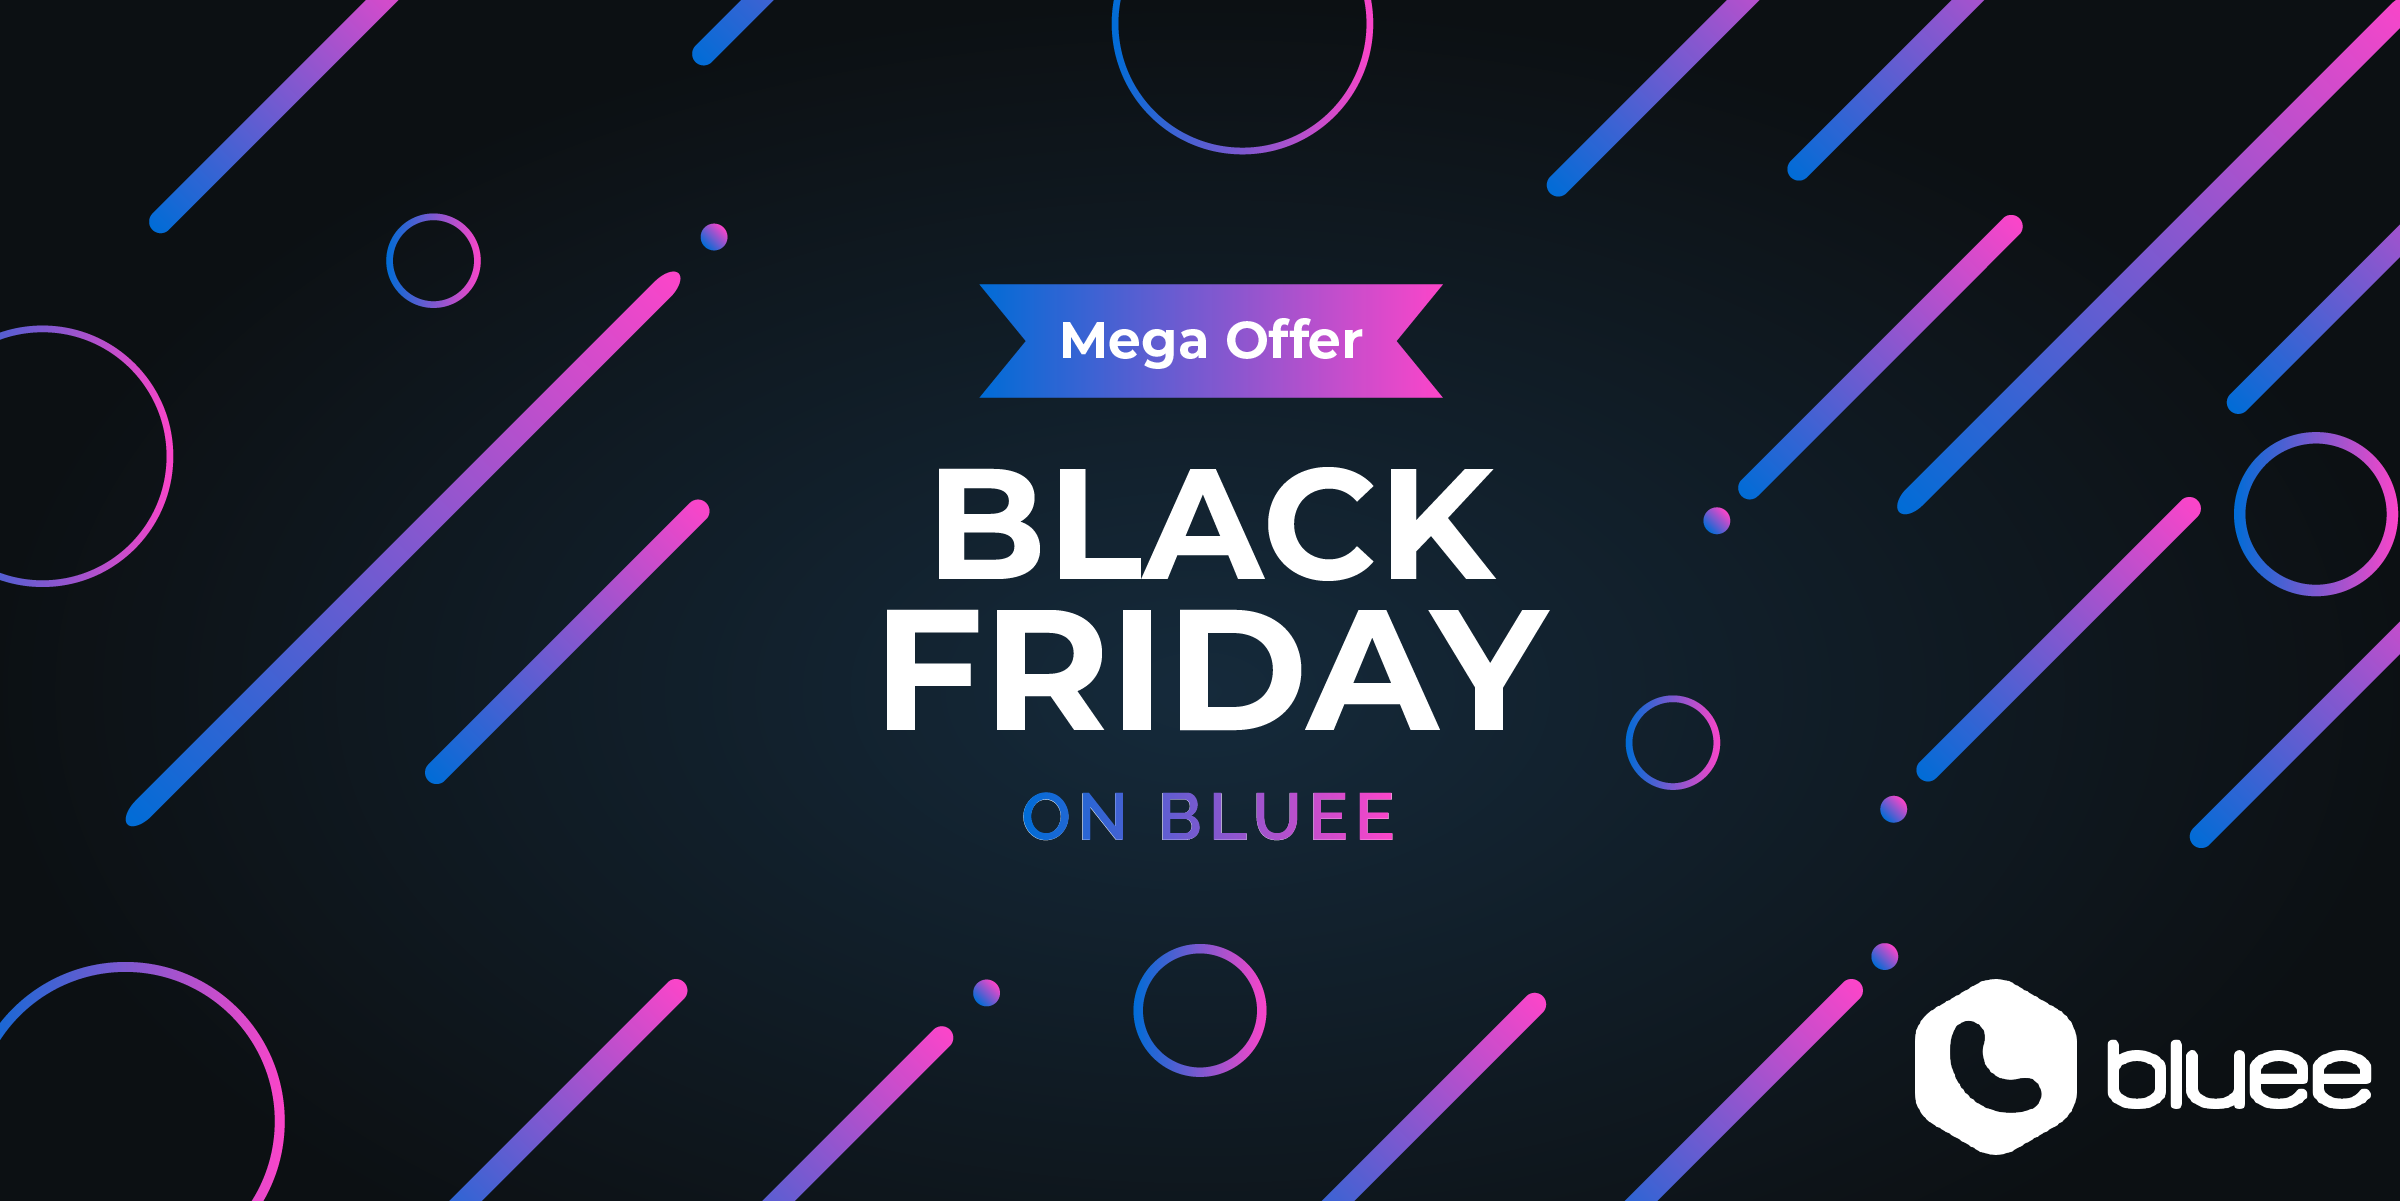 Black Friday – Mega Offer